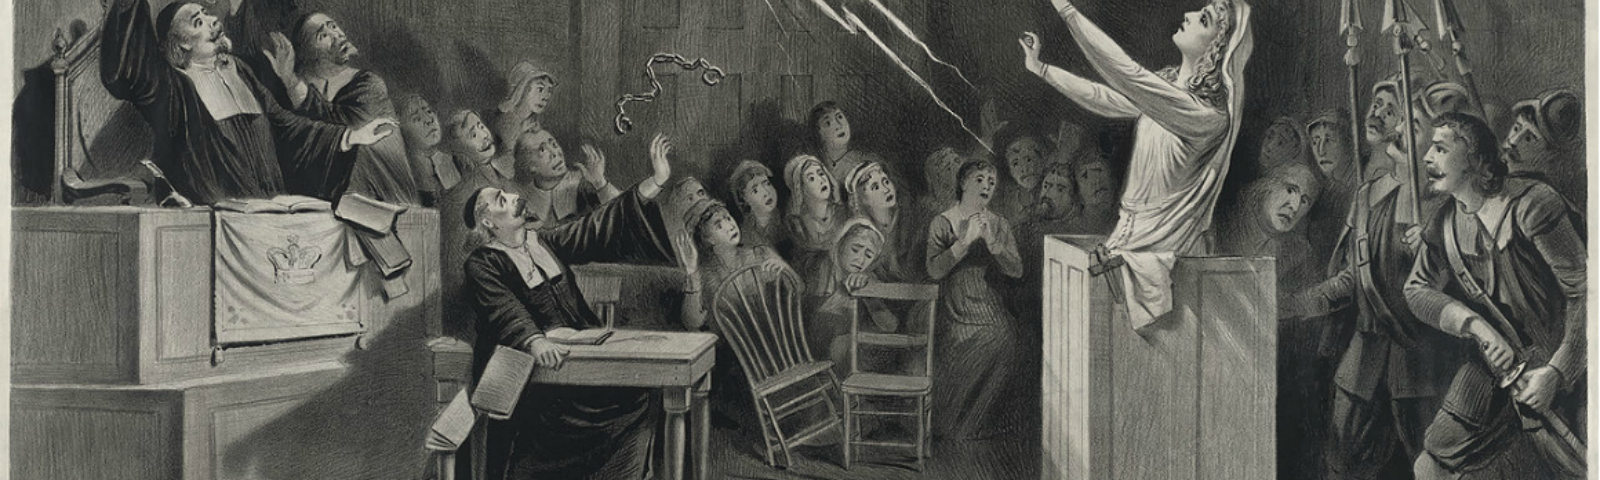 �was the salem witchcraft hysteria a product of women�s search for power?� The strains of moving from a puritan utopia to a royal colony further played out in the witchcraft hysteria that hit the coastal town of salem village (now the town of danvers, ma) in 1692.